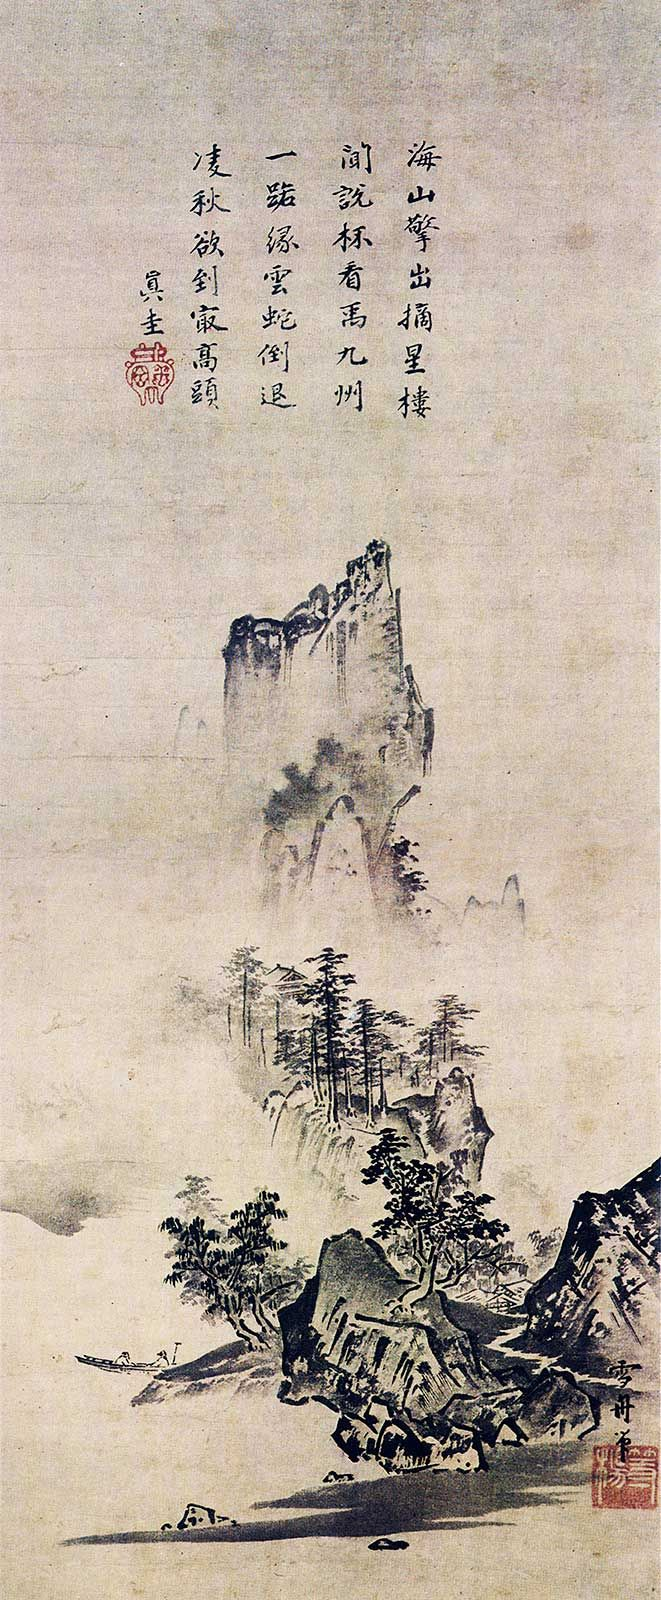 山水図 龍崗真圭賛 Landscape view of the Word of Ryukou Masakei has entered. 雪舟 Sesshu